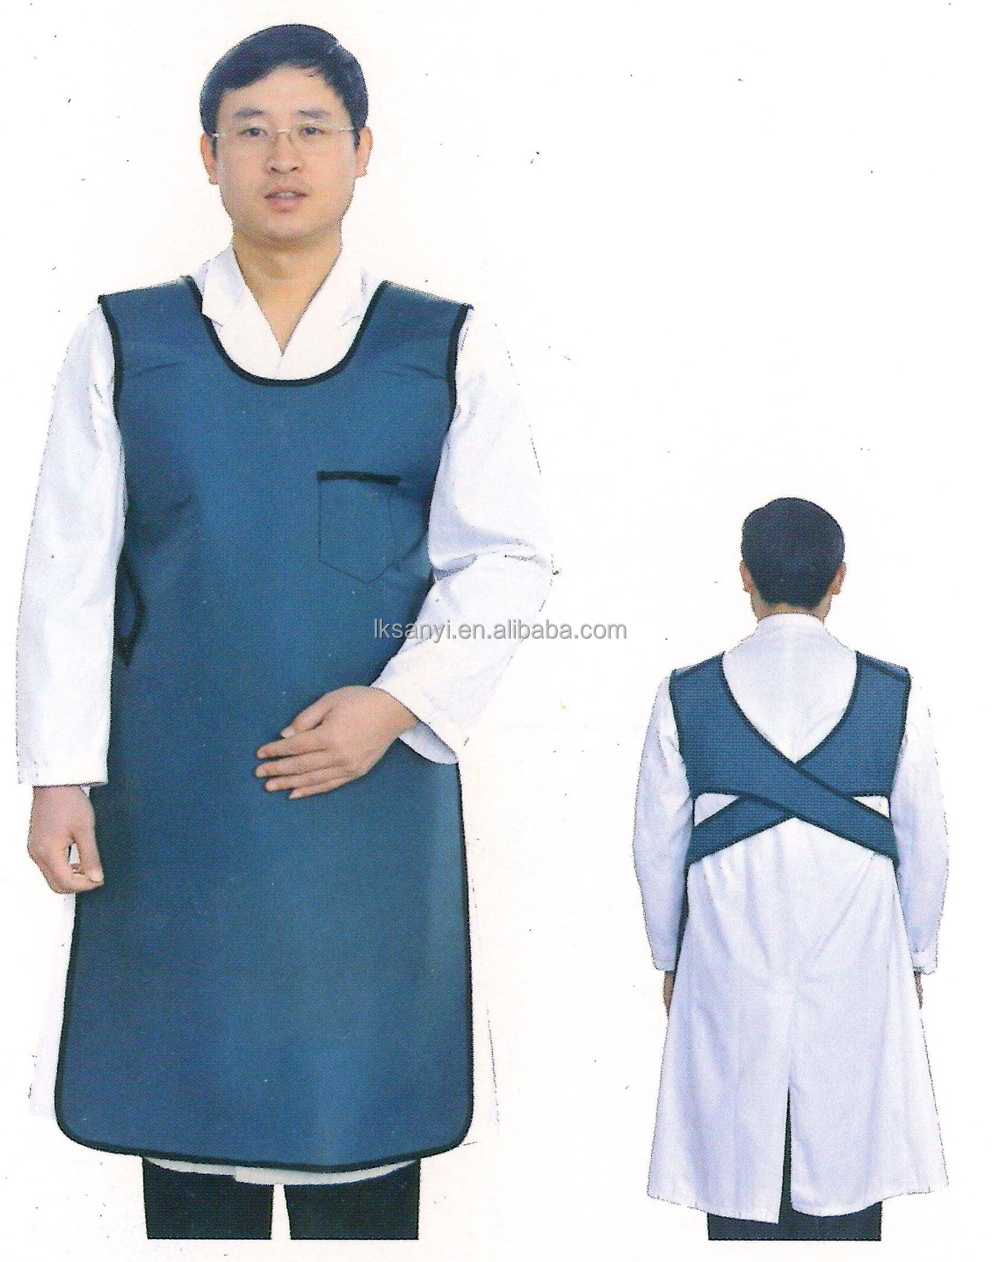 X-ray Protective Lead Clothing/apron